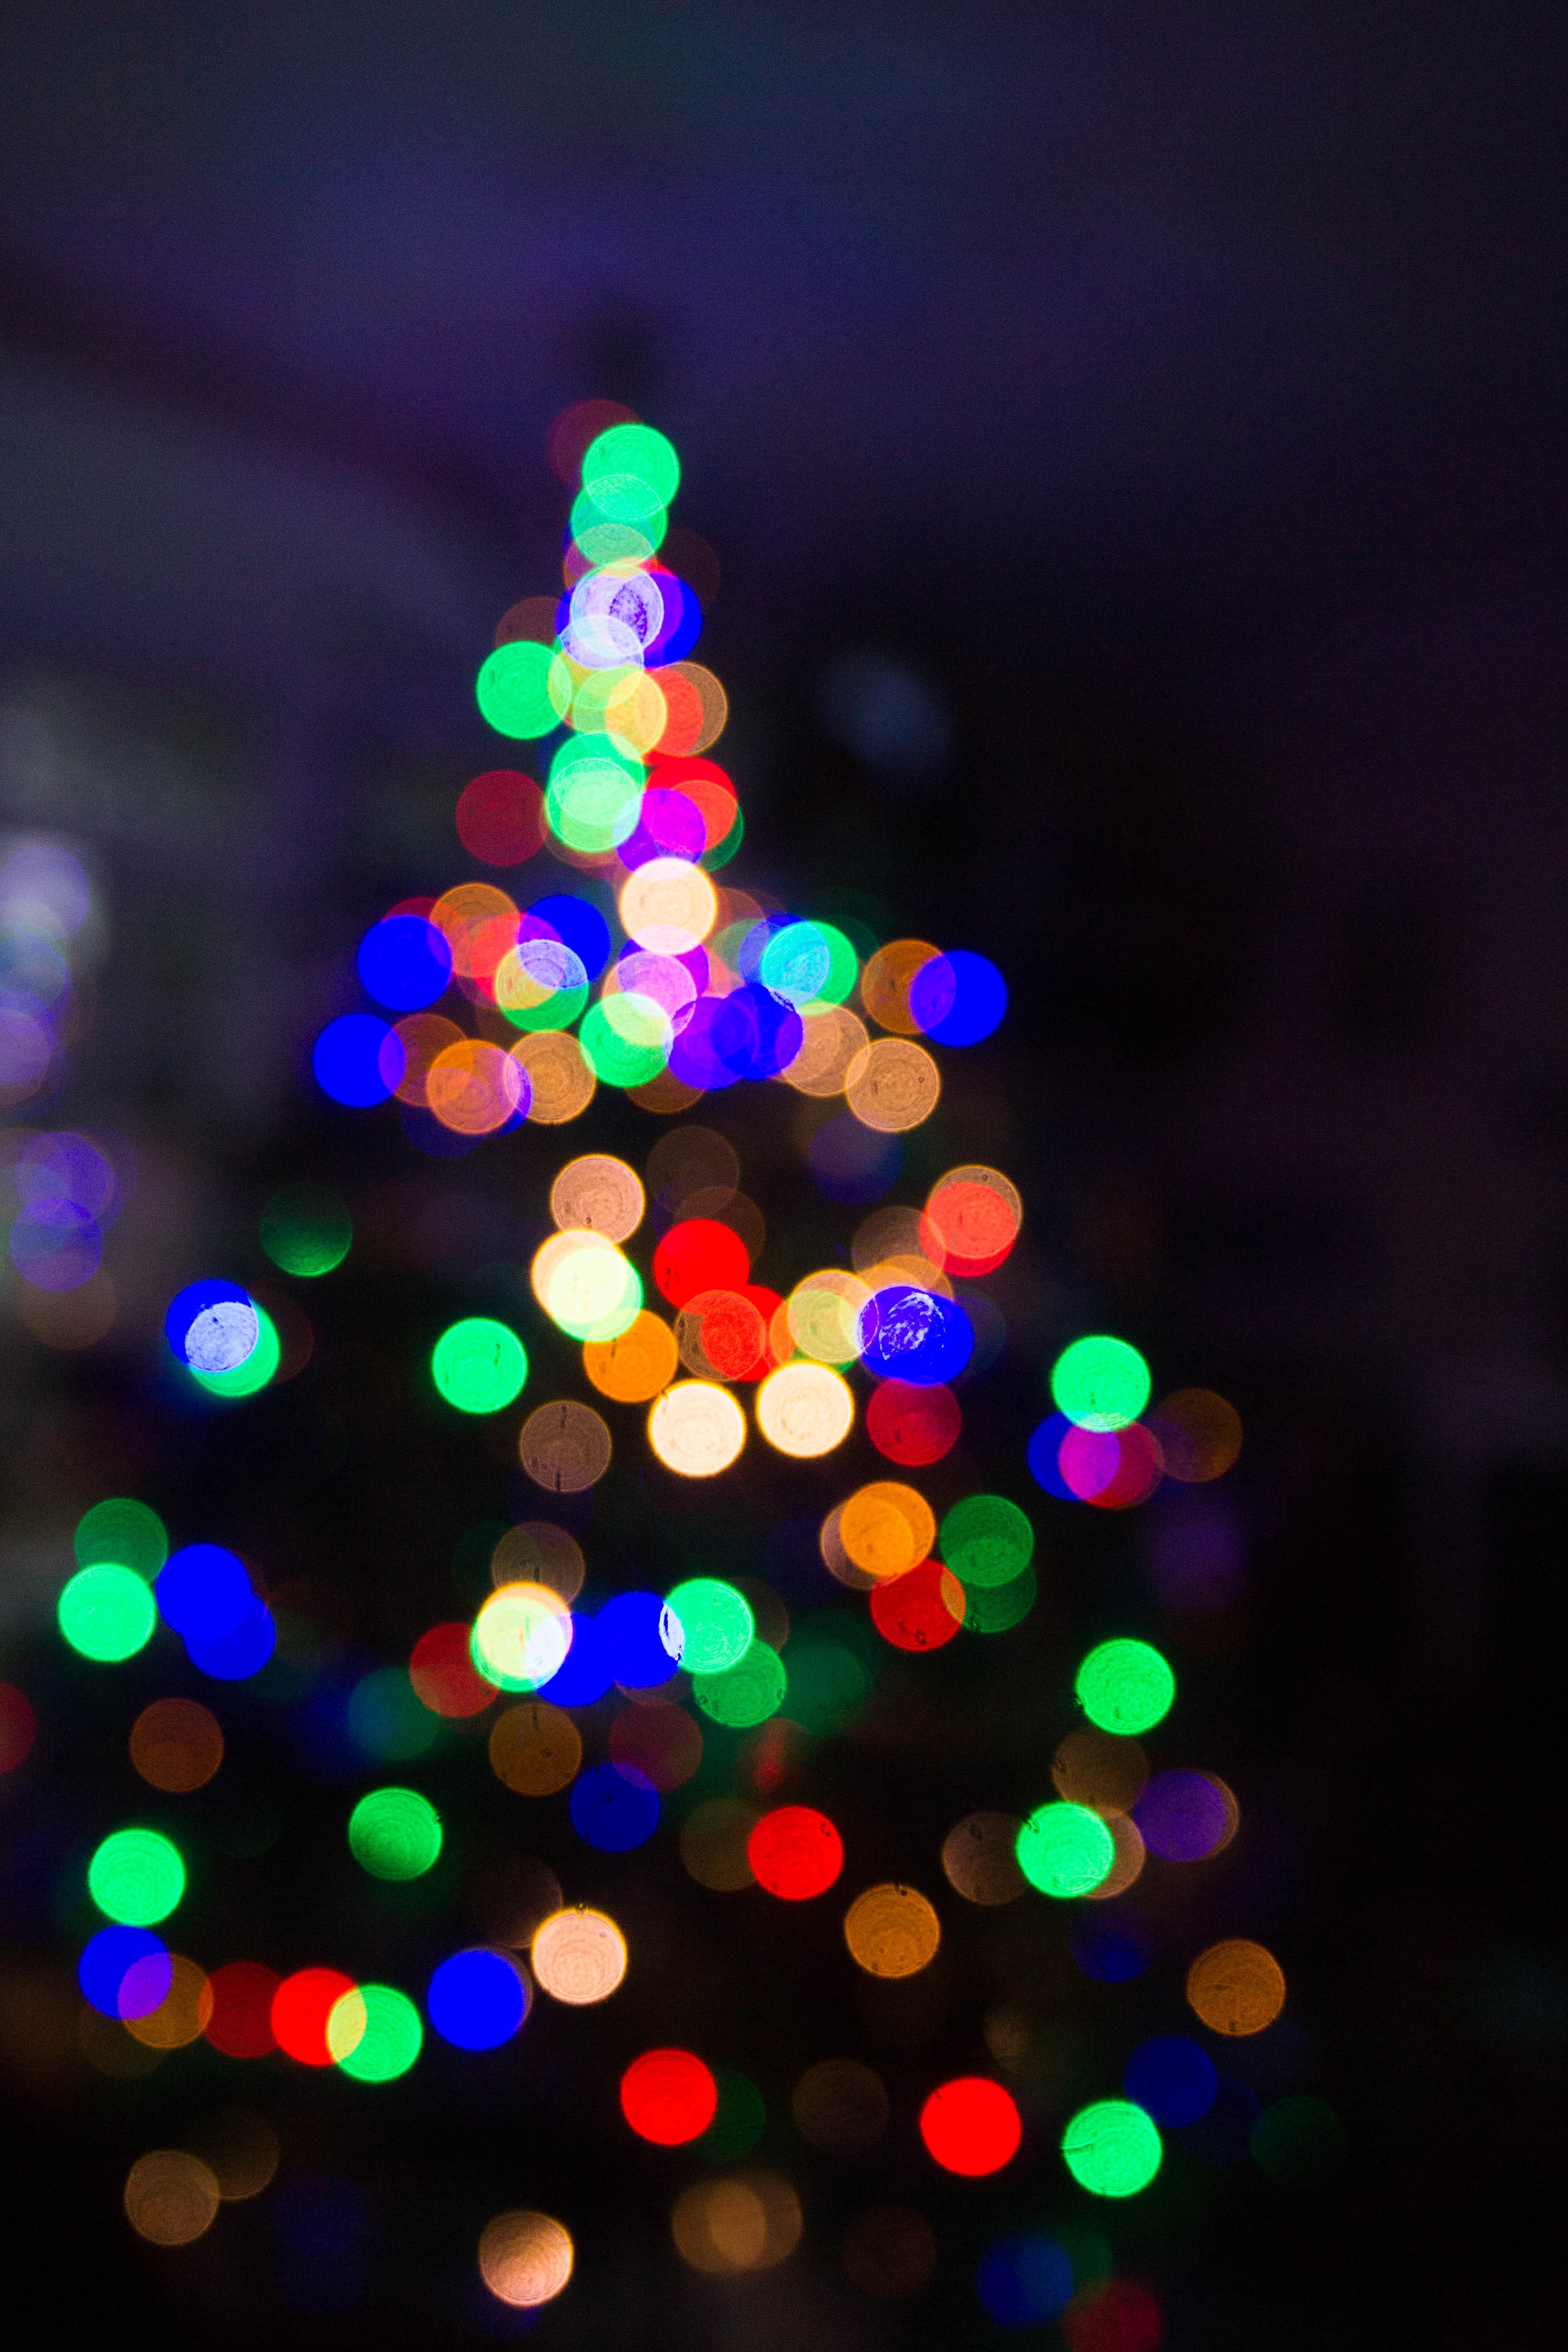 The out-of-focus, festive lights on a Christmas tree create a visual blur of dark and light